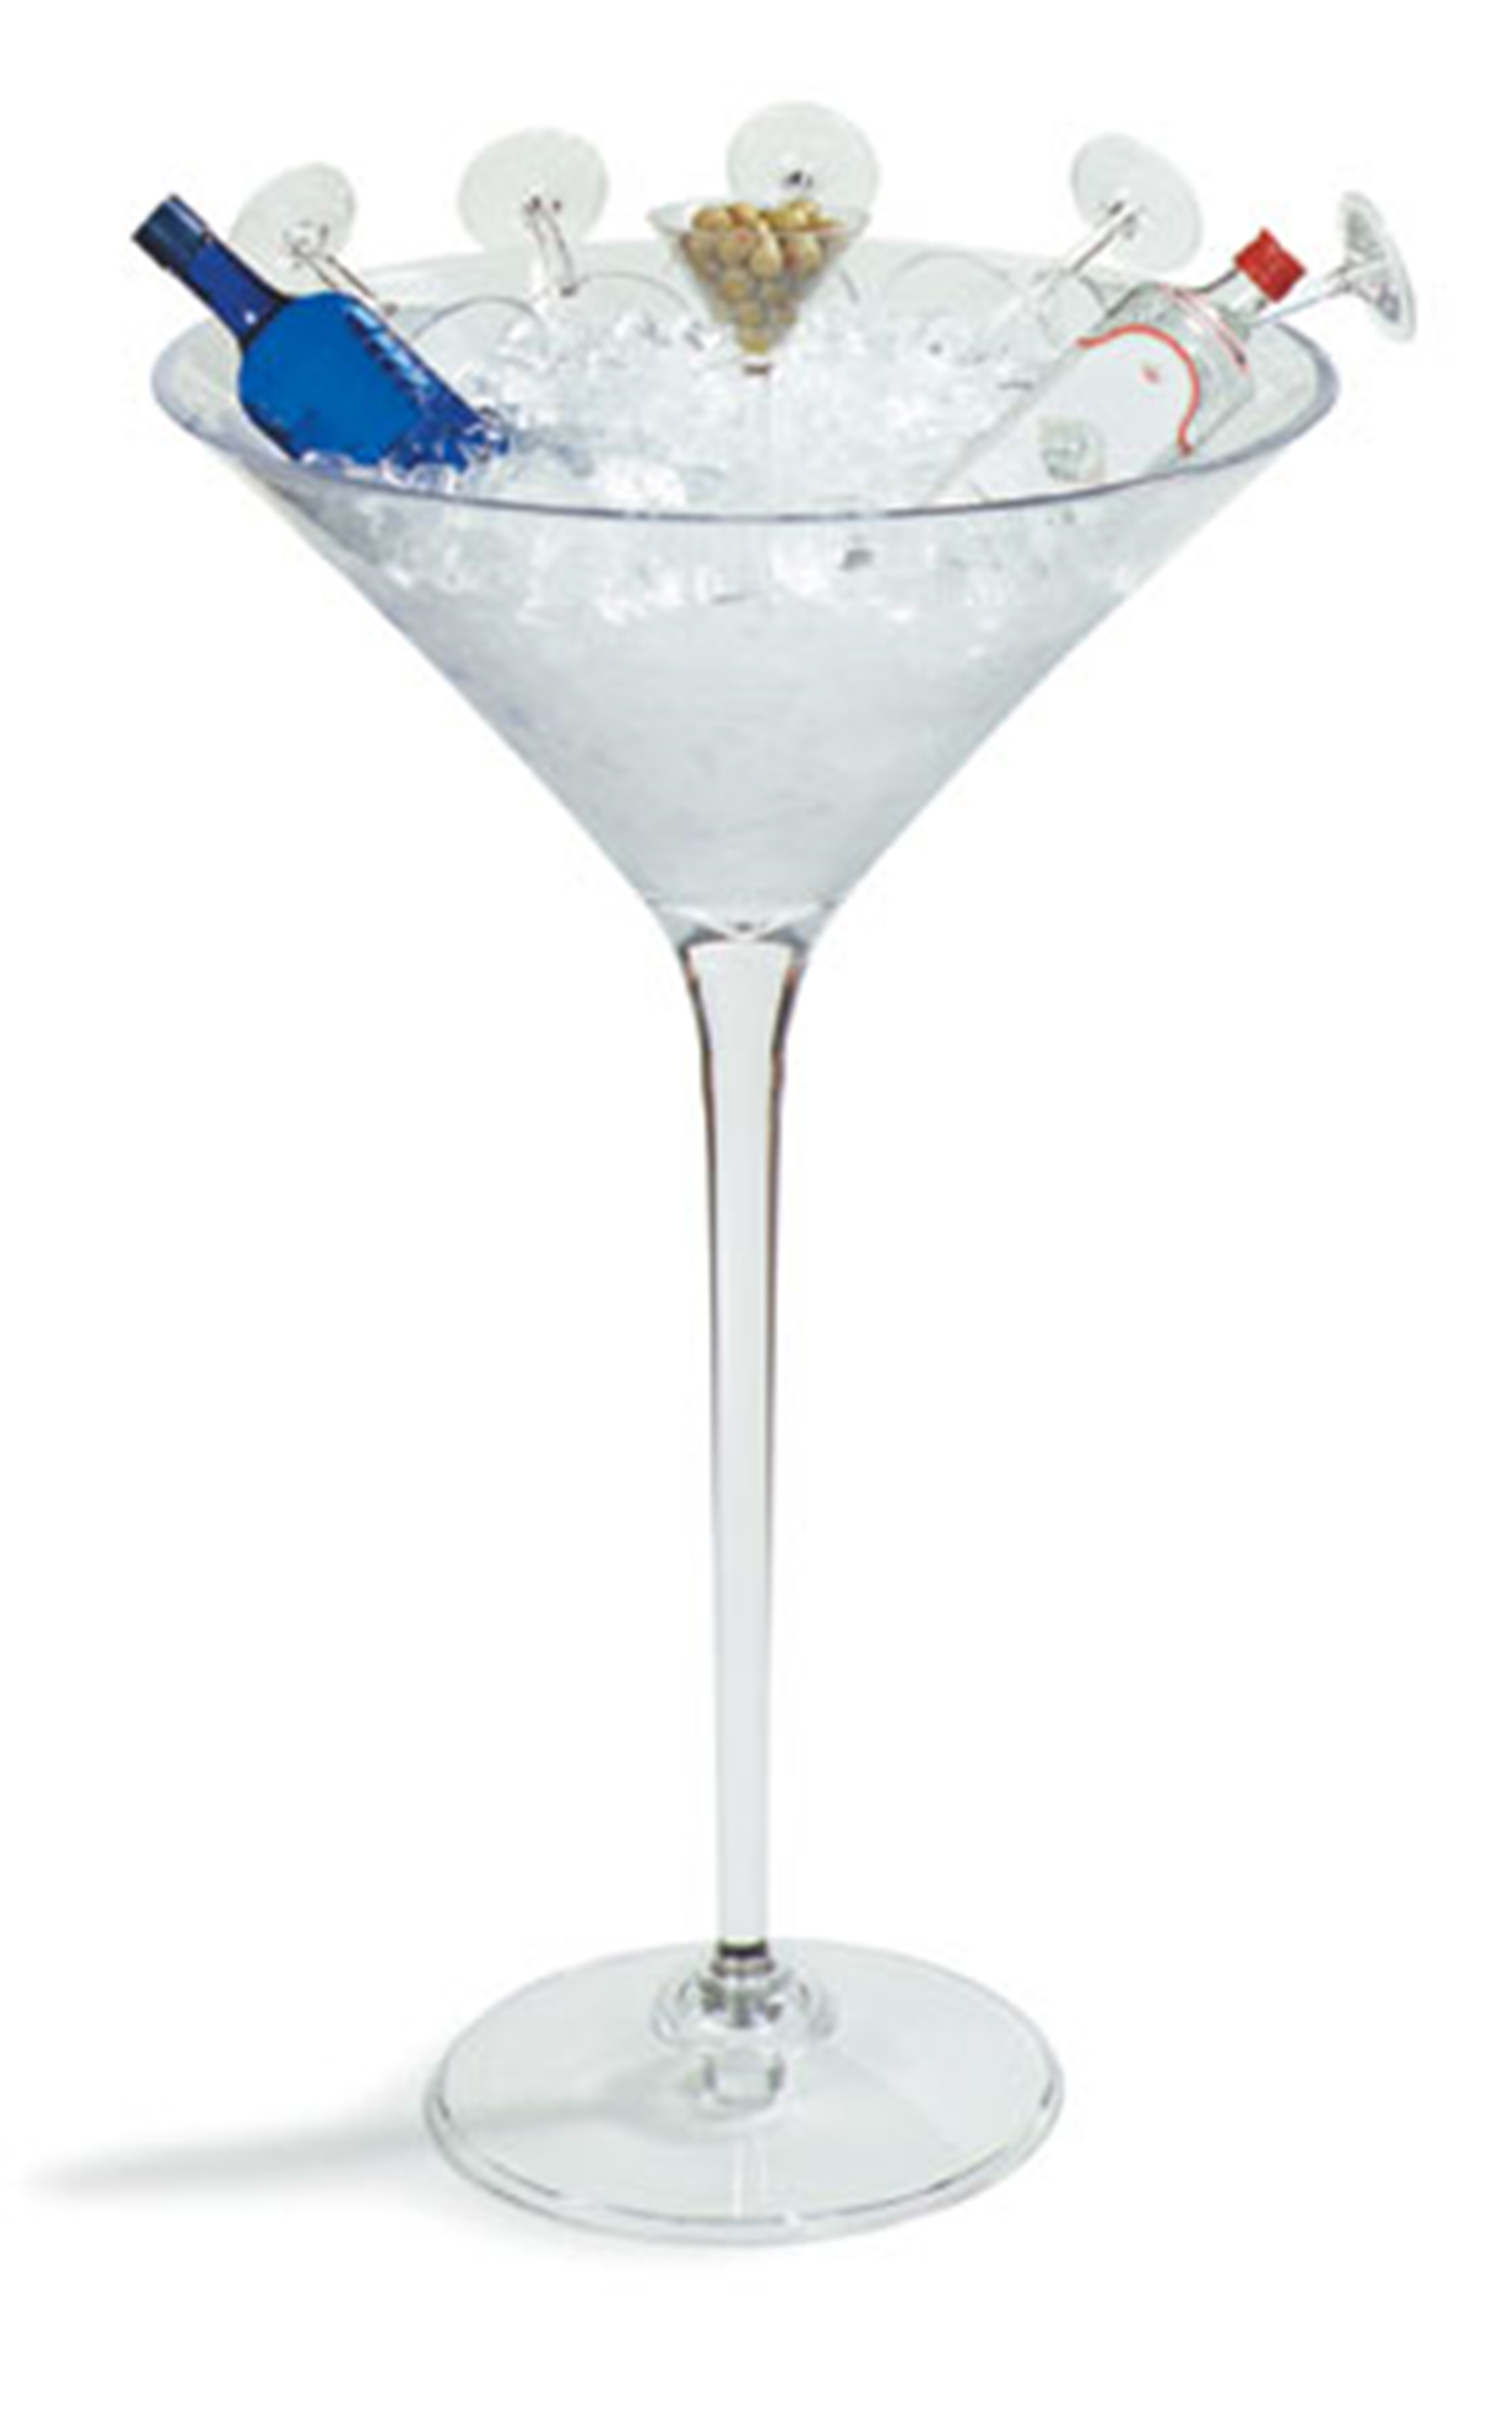 Giant Martini Glass Ice Tub Acrylic